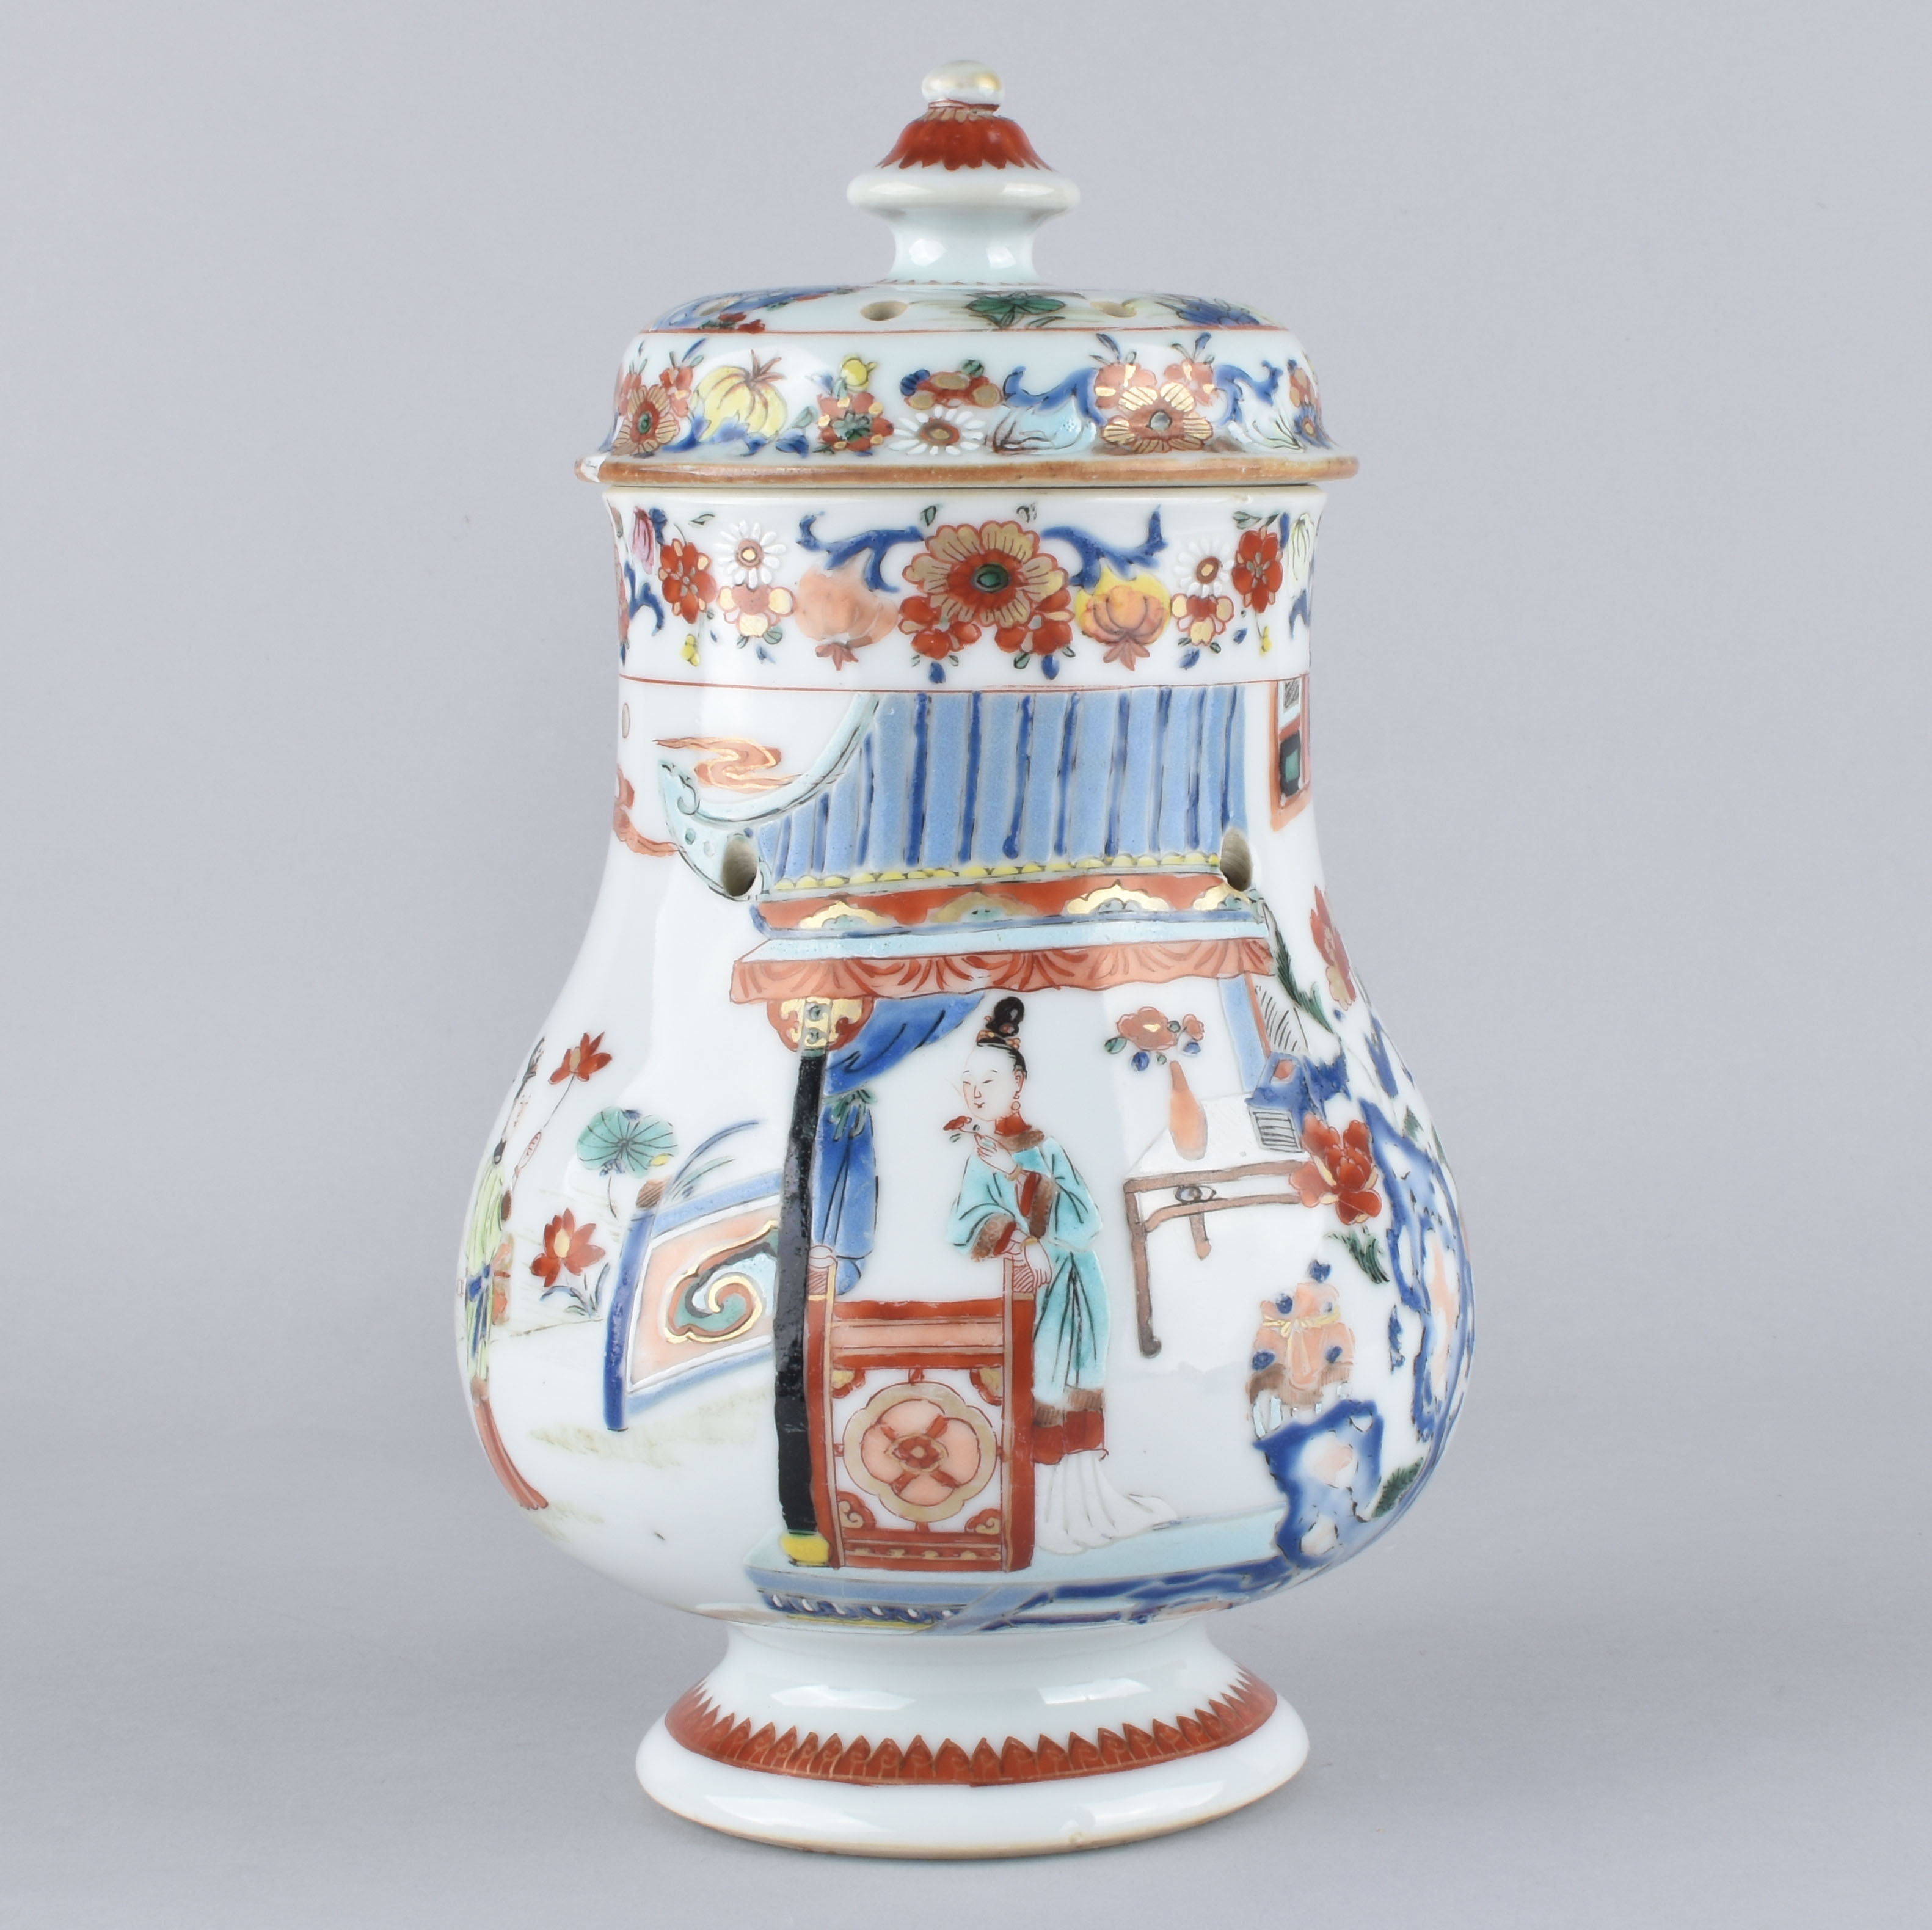 Famille rose Porcelaine Yongzheng (1723-1735), ca. 1725/1730, Chine